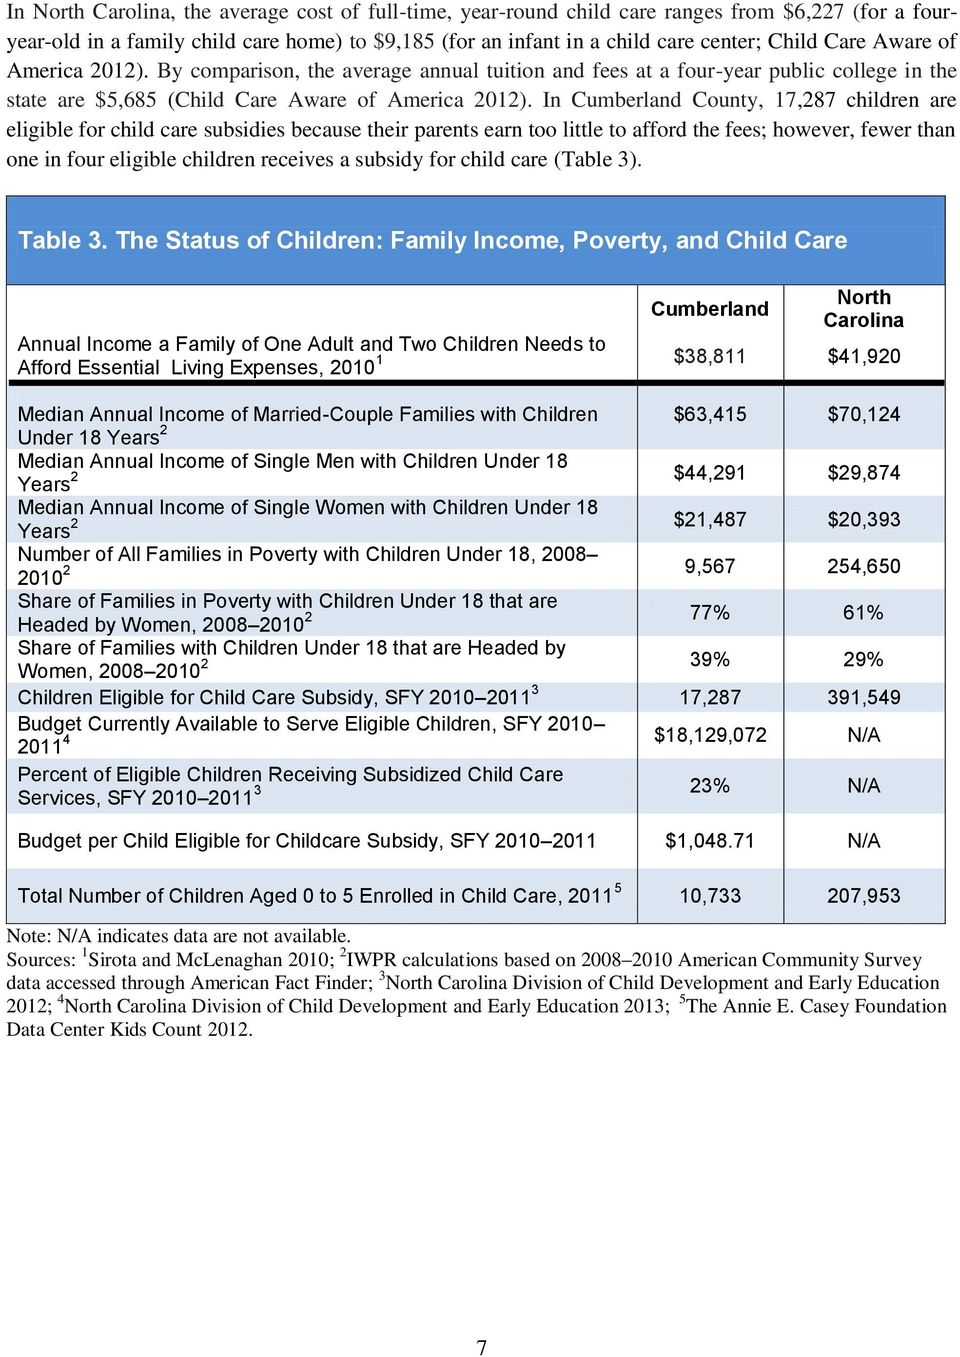 In Cumberland County, 17,287 children are eligible for child care subsidies because their parents earn too little to afford the fees; however, fewer than one in four eligible children receives a